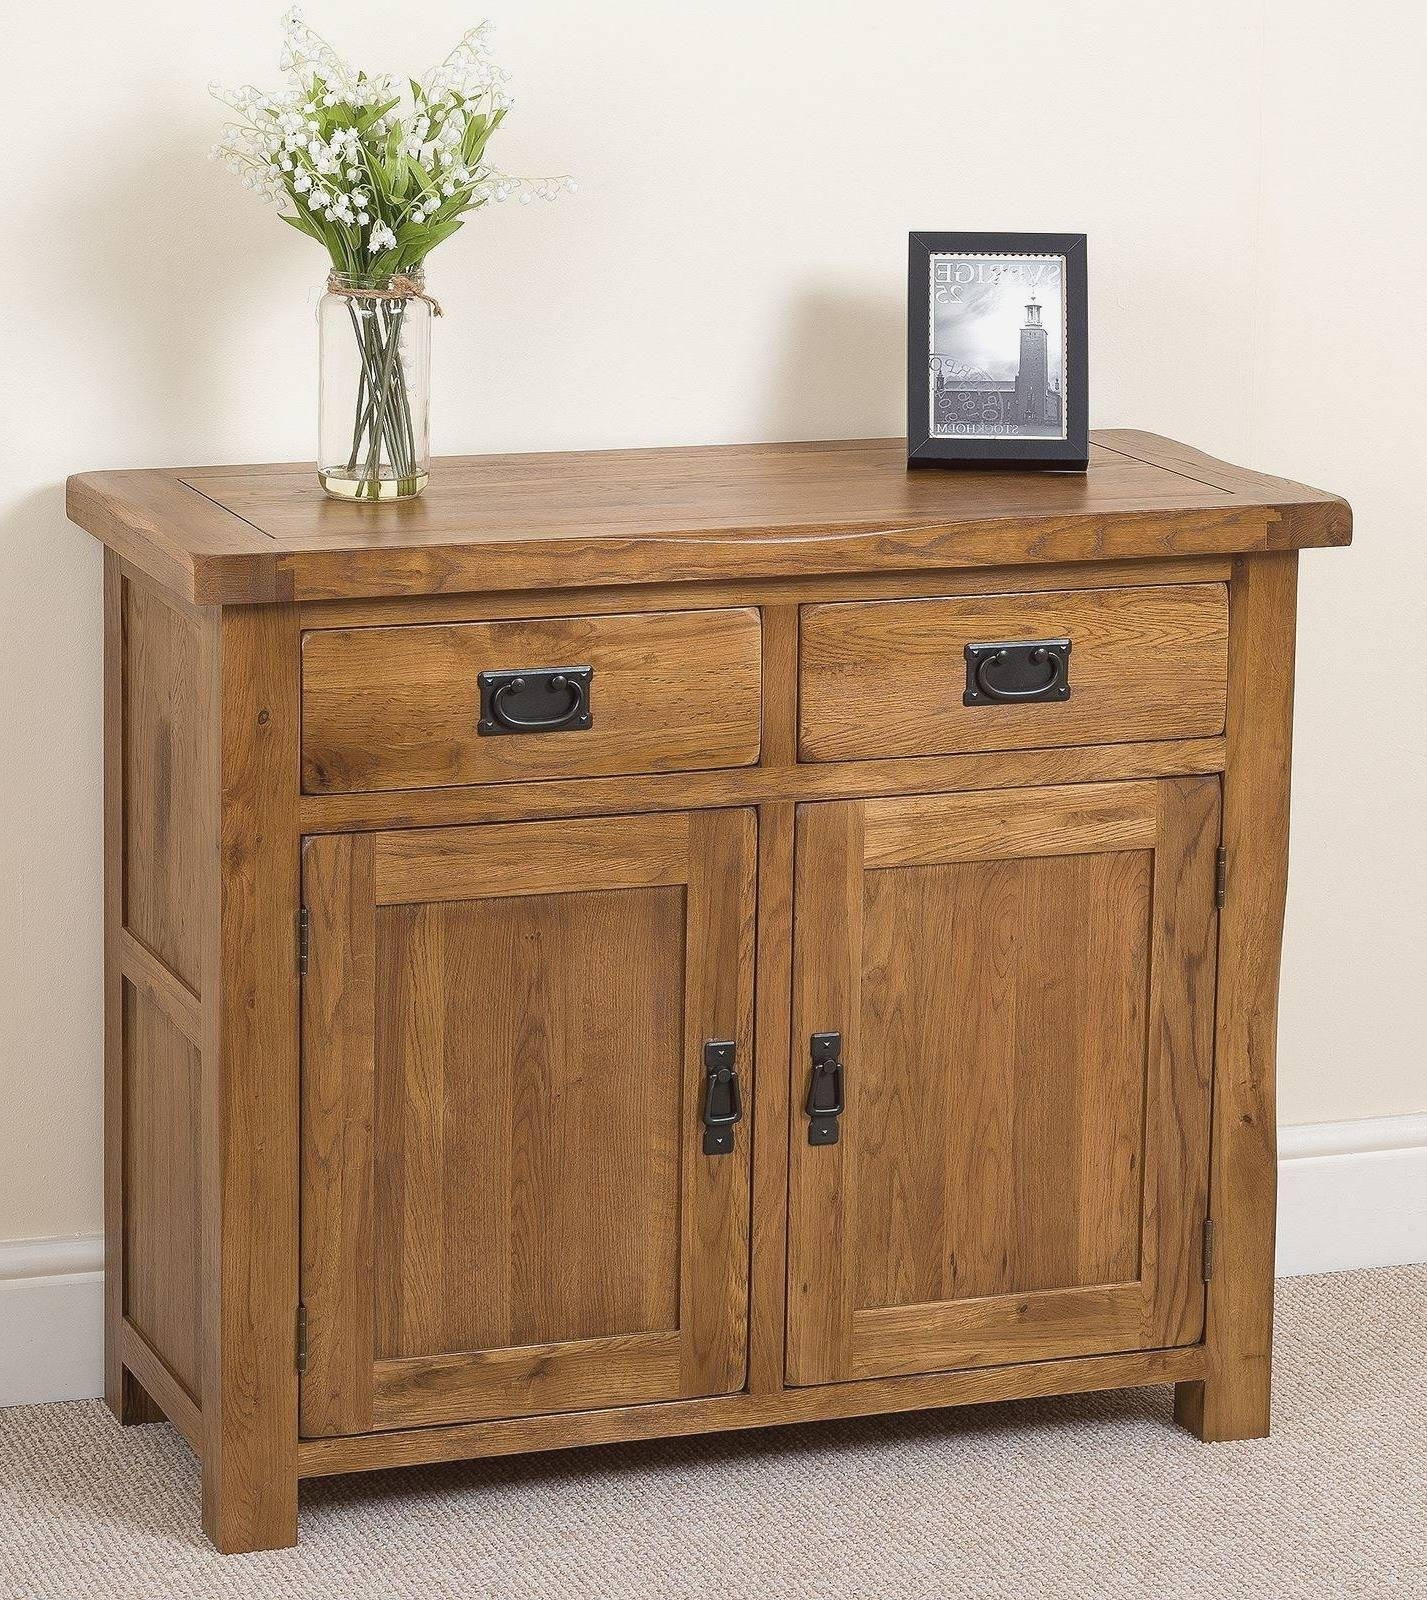 Solid Wood Sideboards And Buffets | Rembun.co with regard to Wood Sideboards (Image 27 of 30)